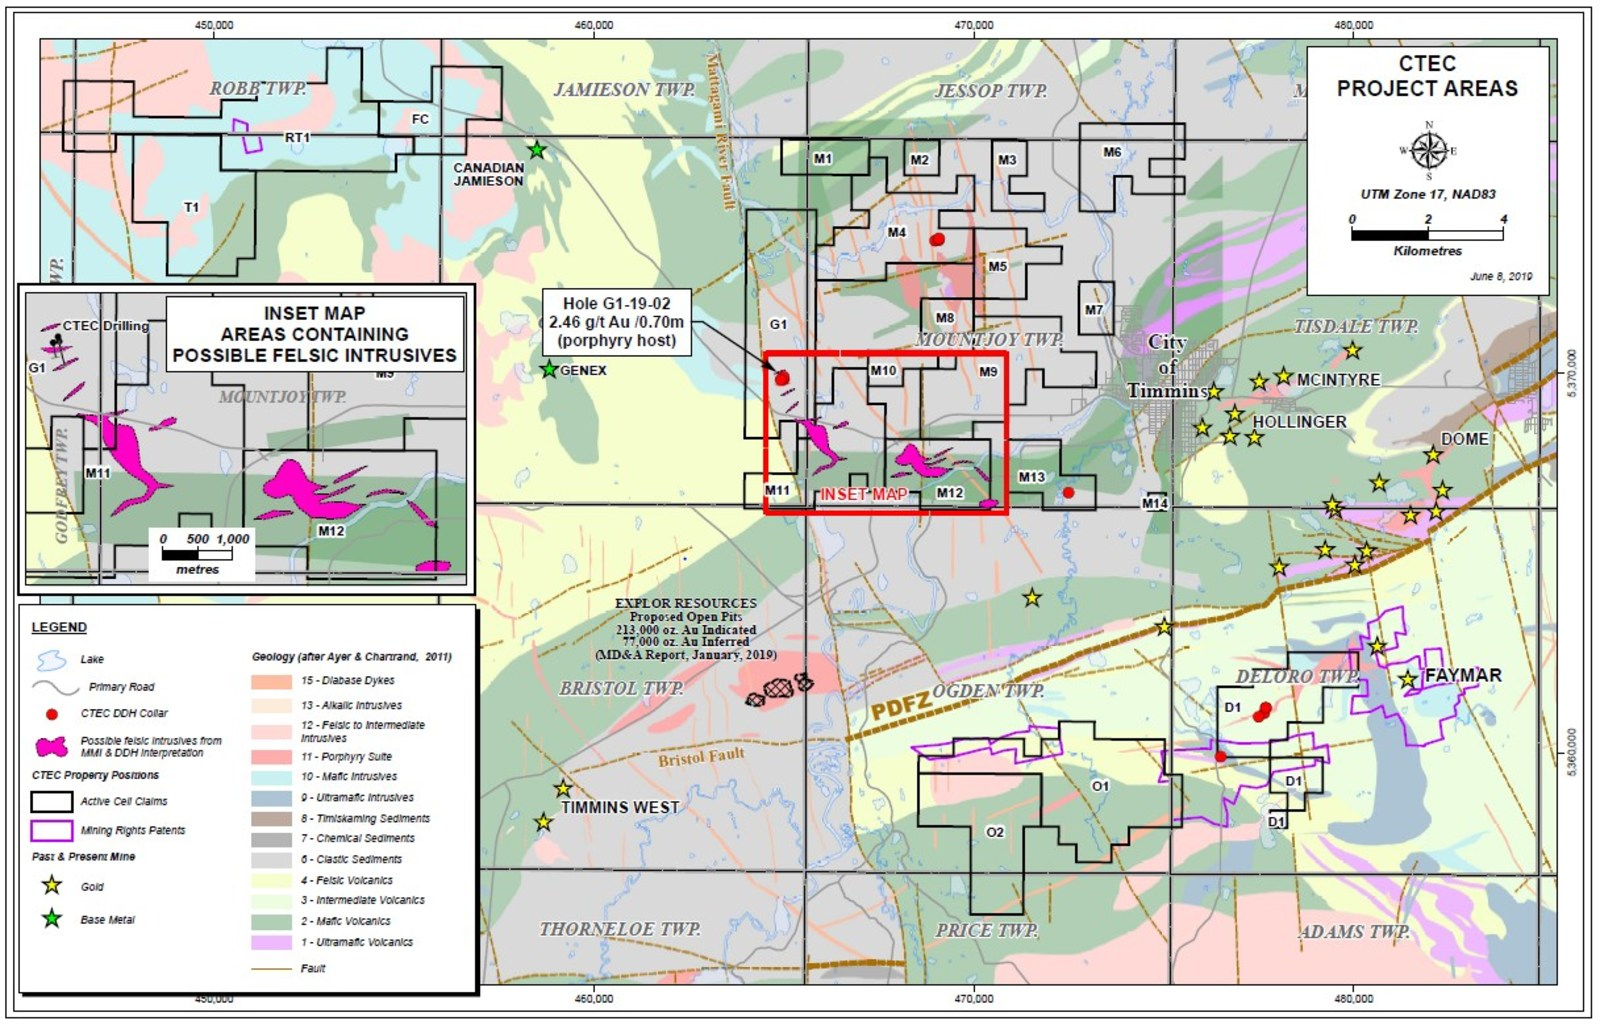 CTEC Project Location and Geology Map